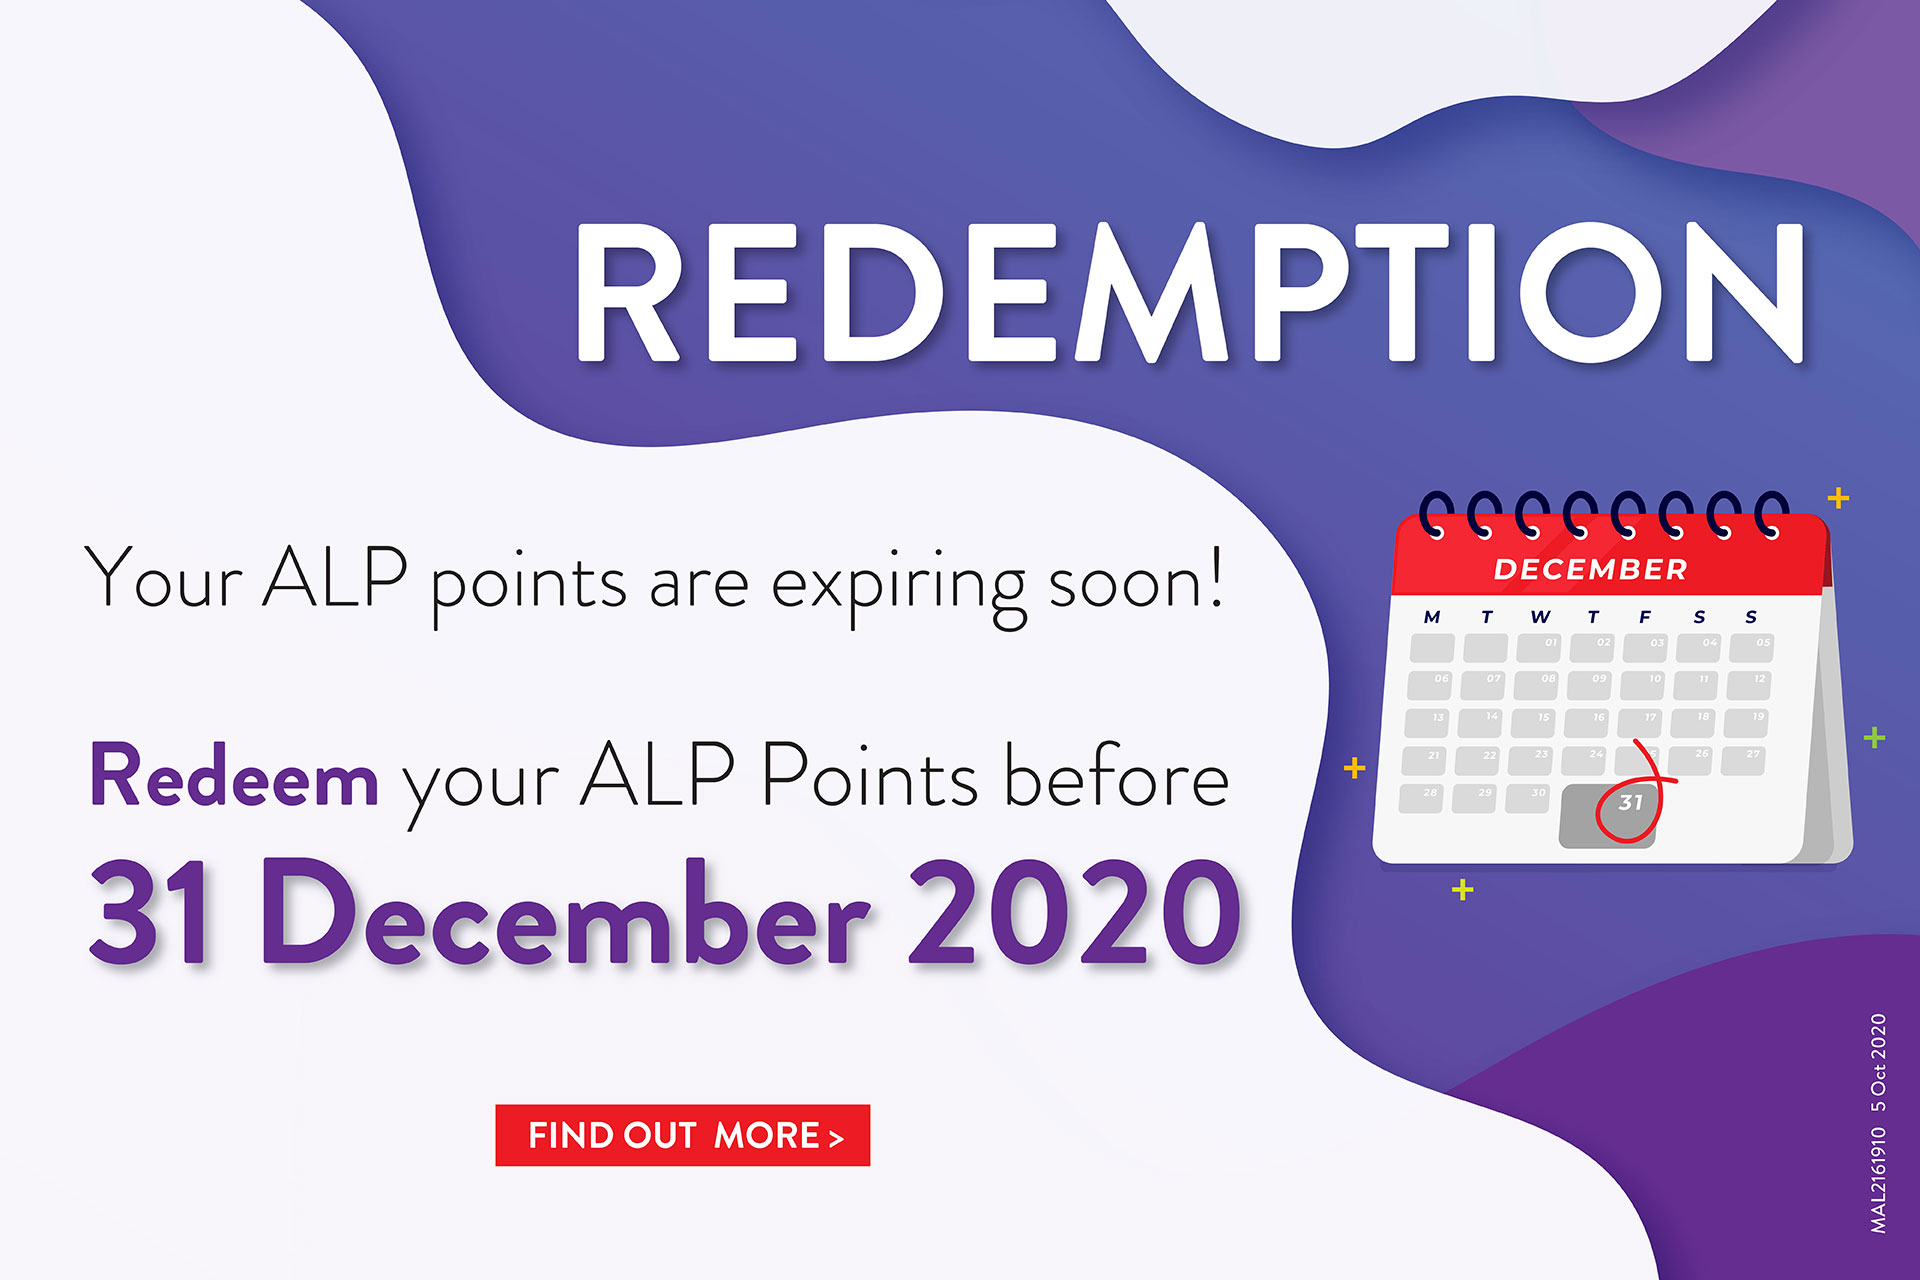 Enjoy Great Rewards 2020